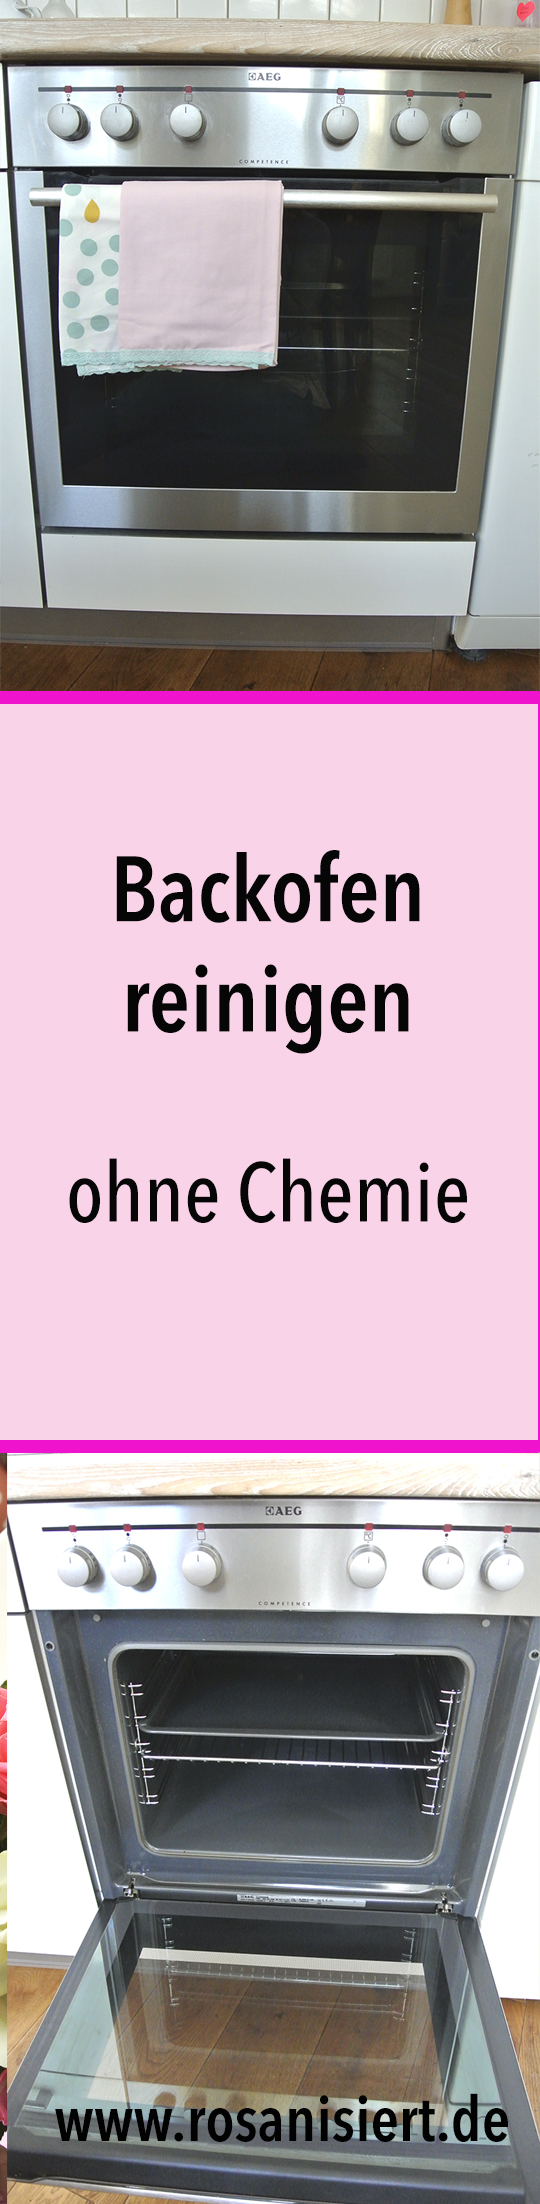 backofen reinigen ohne chemie so wird dein ofen. Black Bedroom Furniture Sets. Home Design Ideas